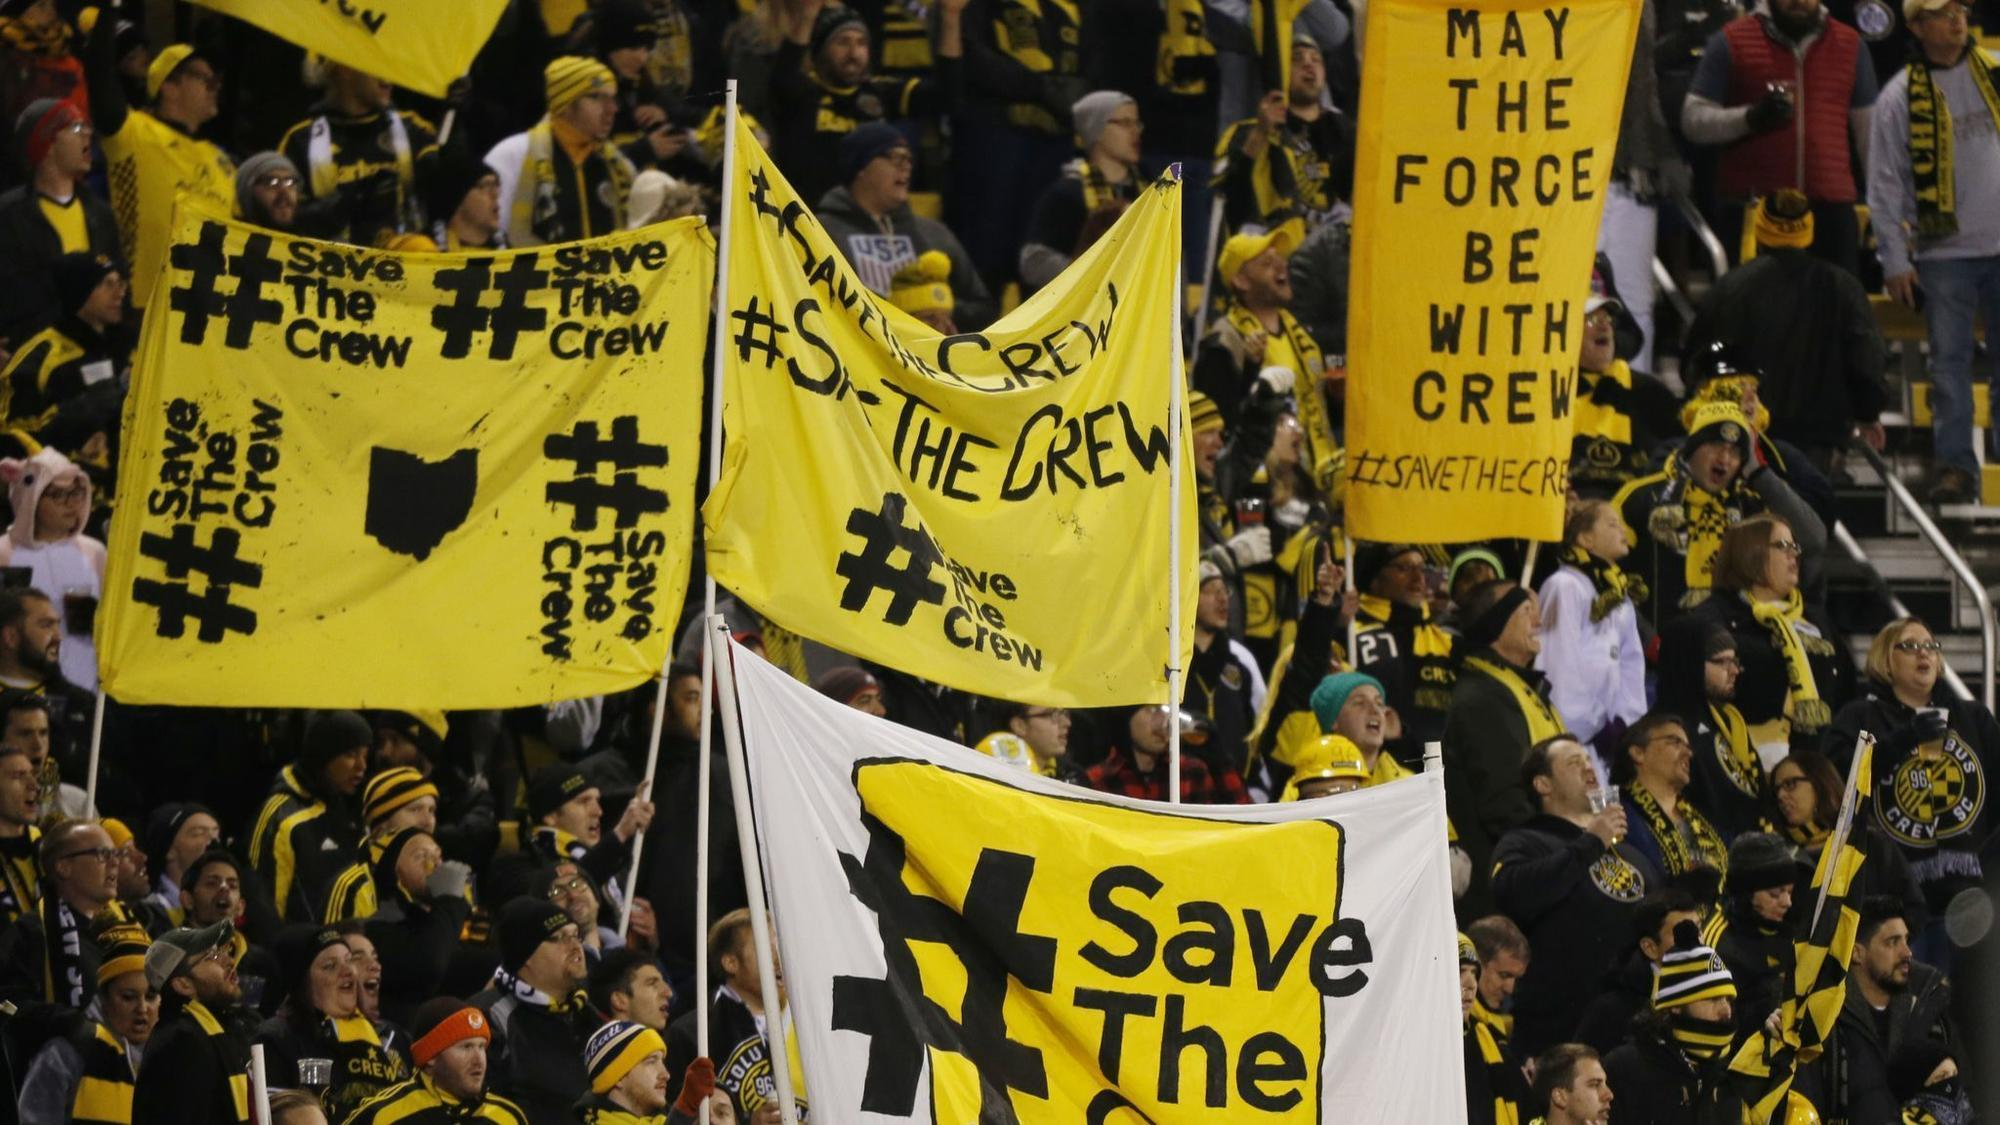 Austin stadium approval could start Crew SC relocation to Texas